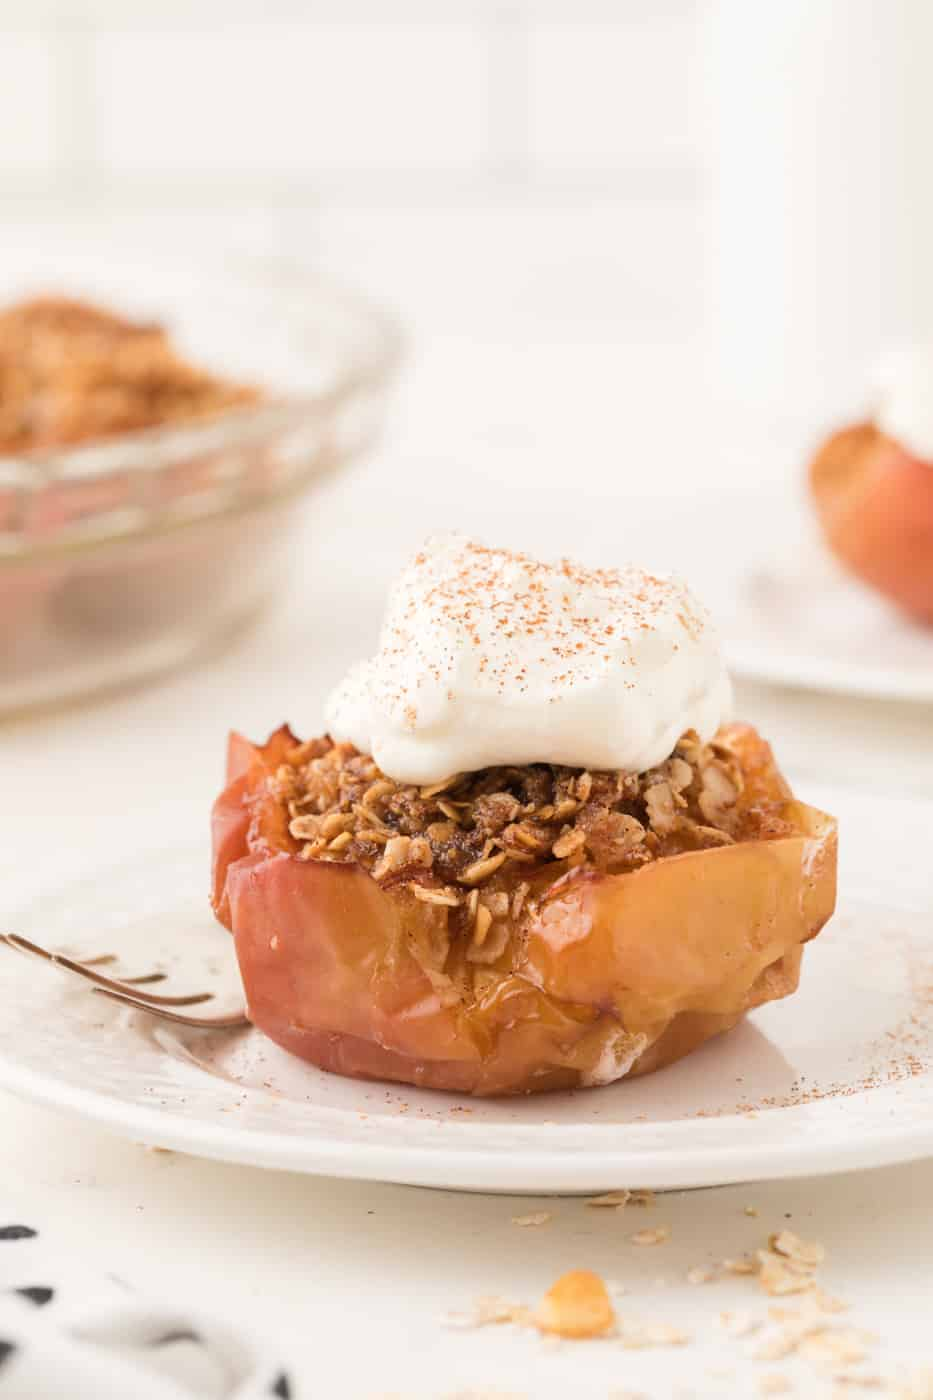 A baked apple with oat topping and whipped cream